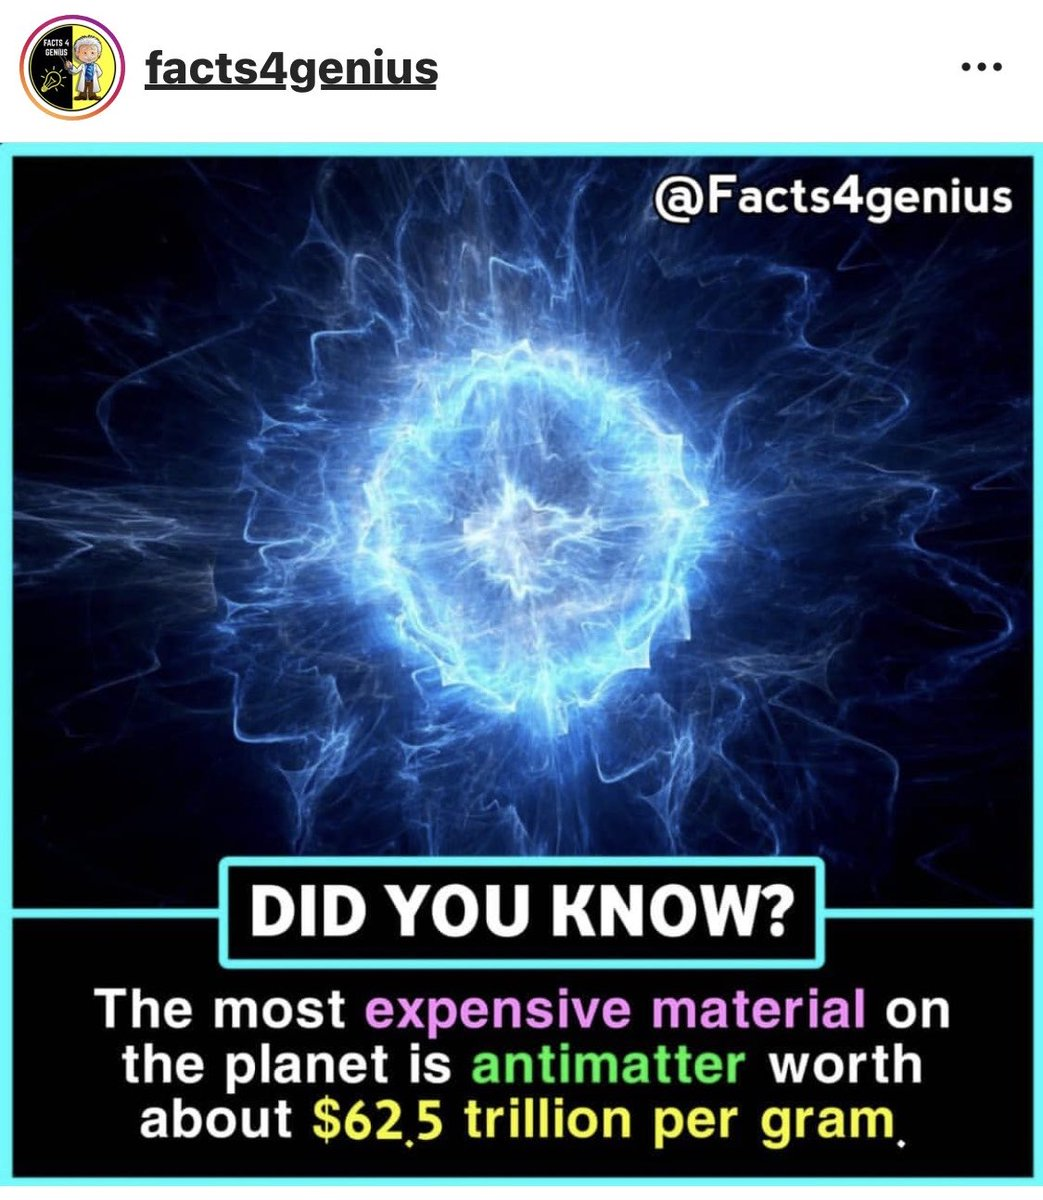 ..antimatter is some costly shiz...